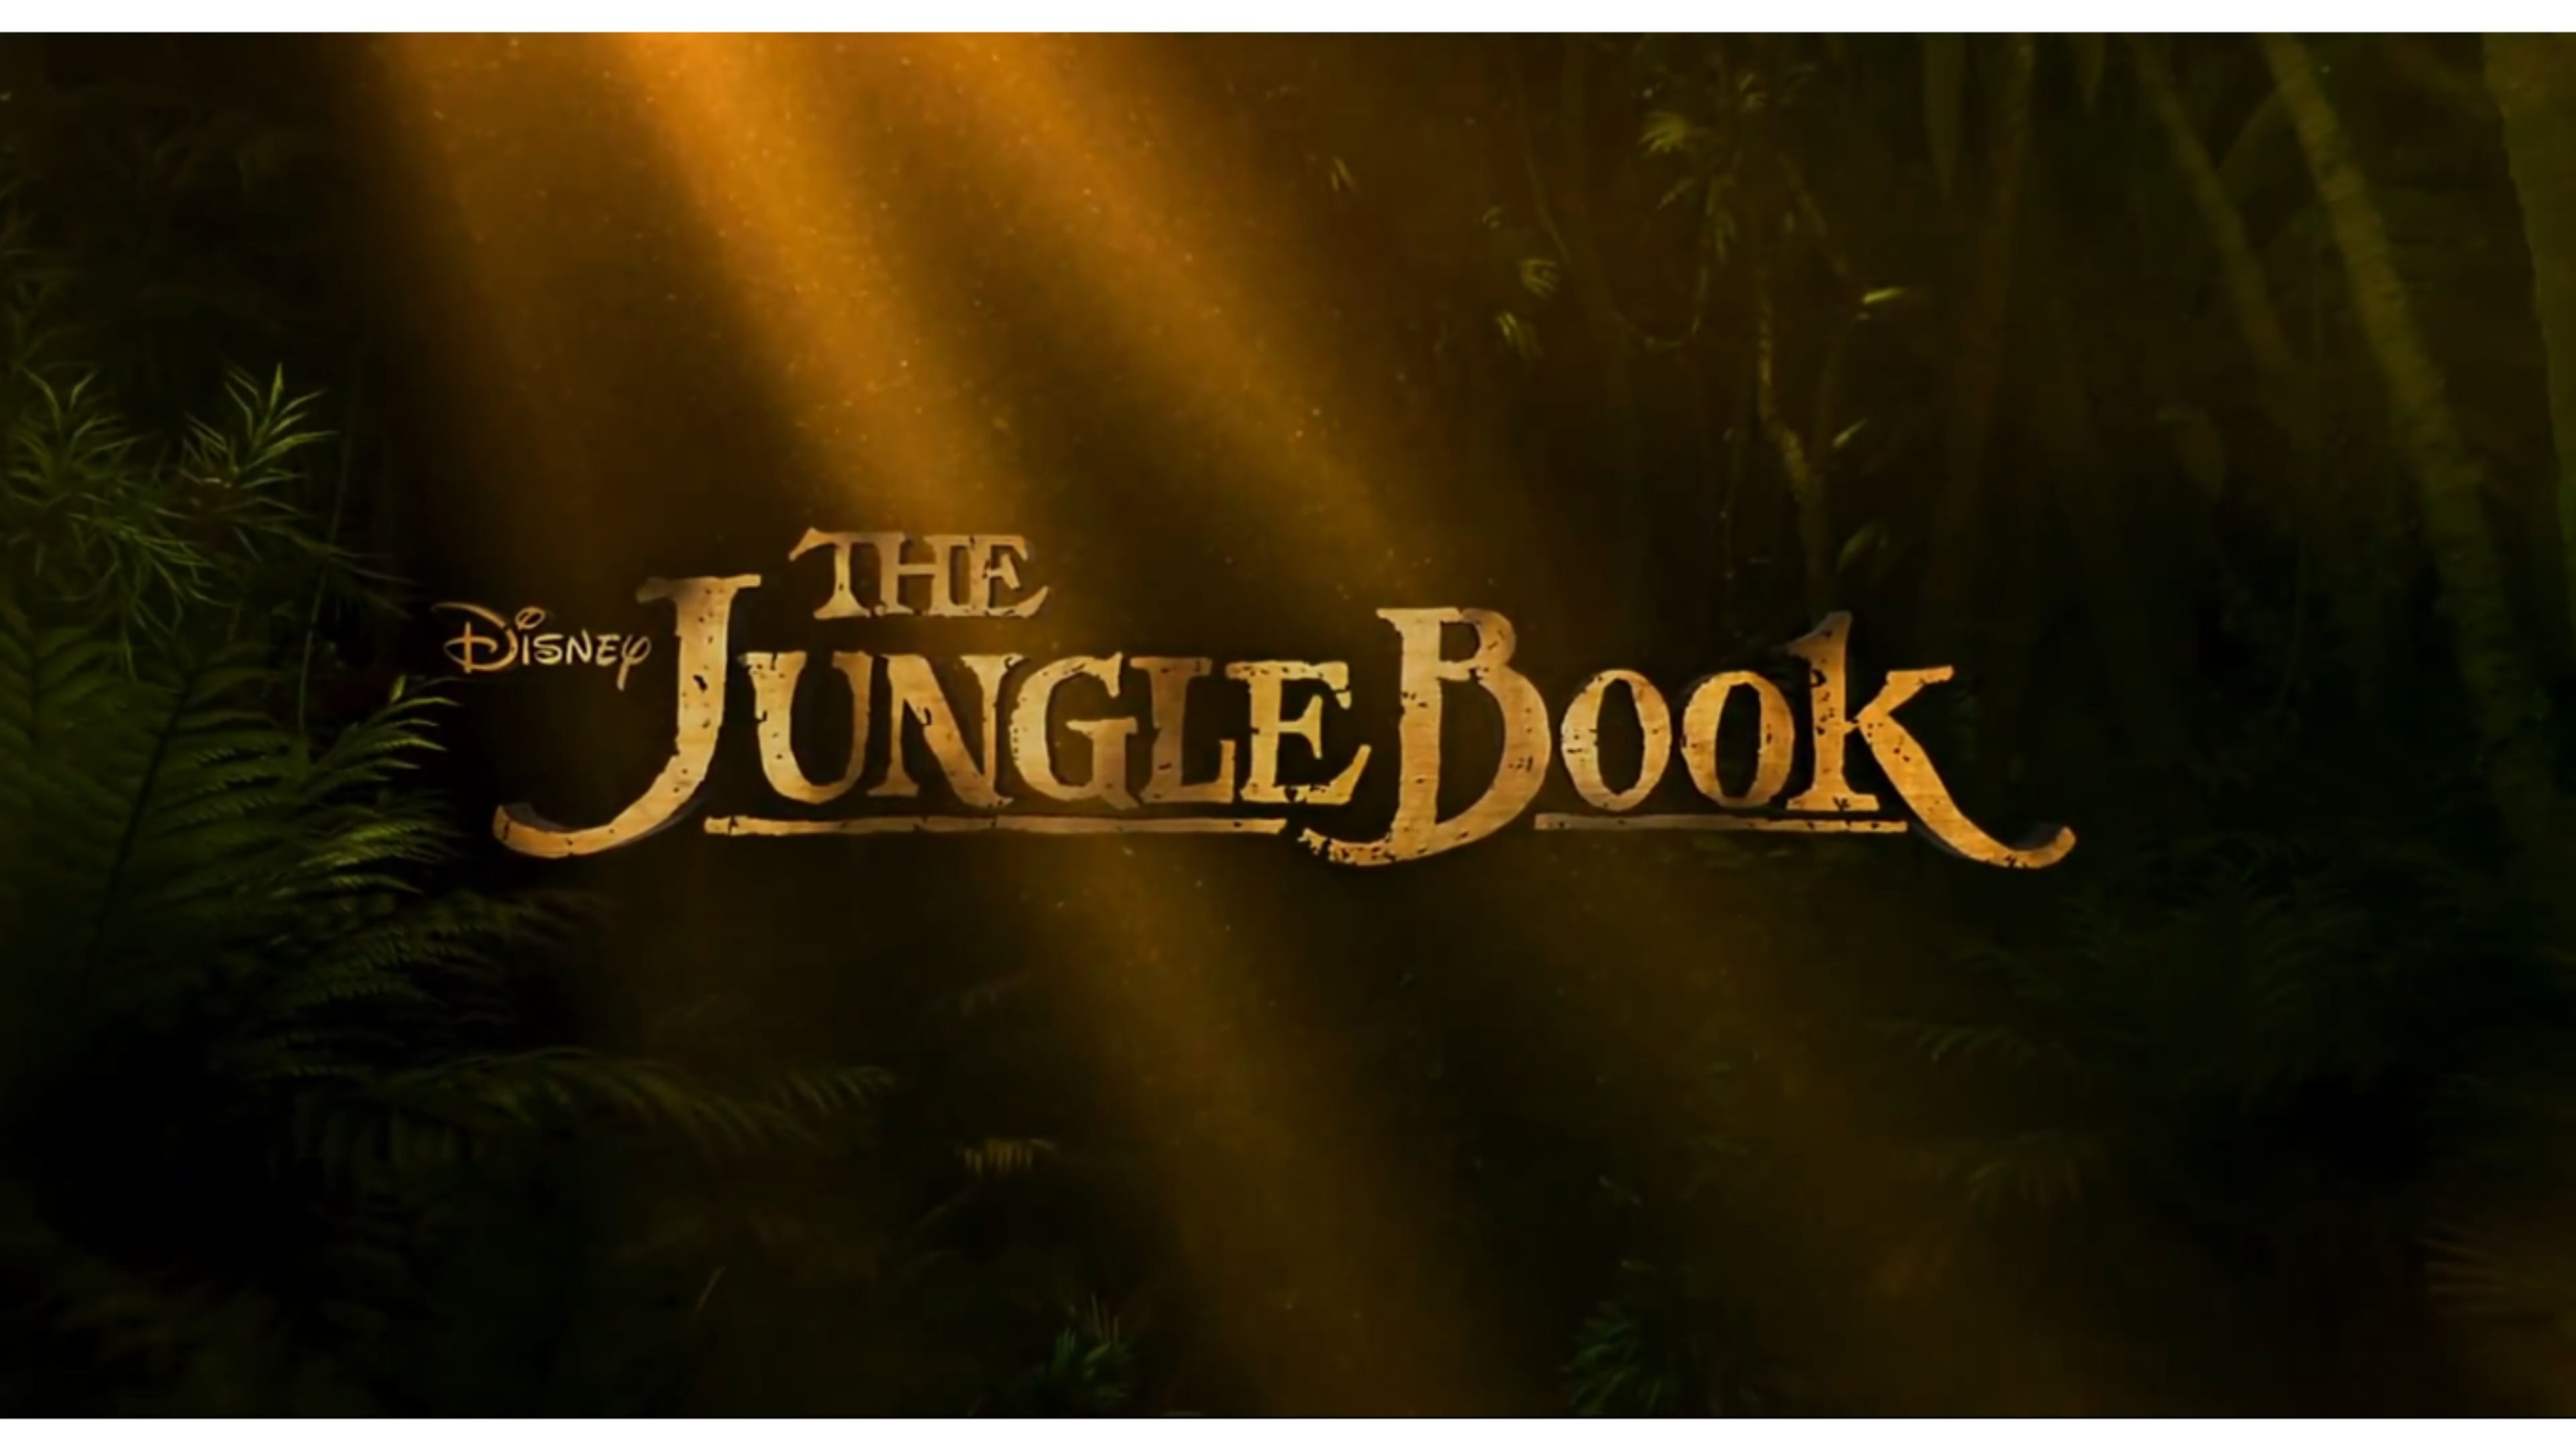 3840x2160 Disney Jungle Book Movie 4K Wallpaper